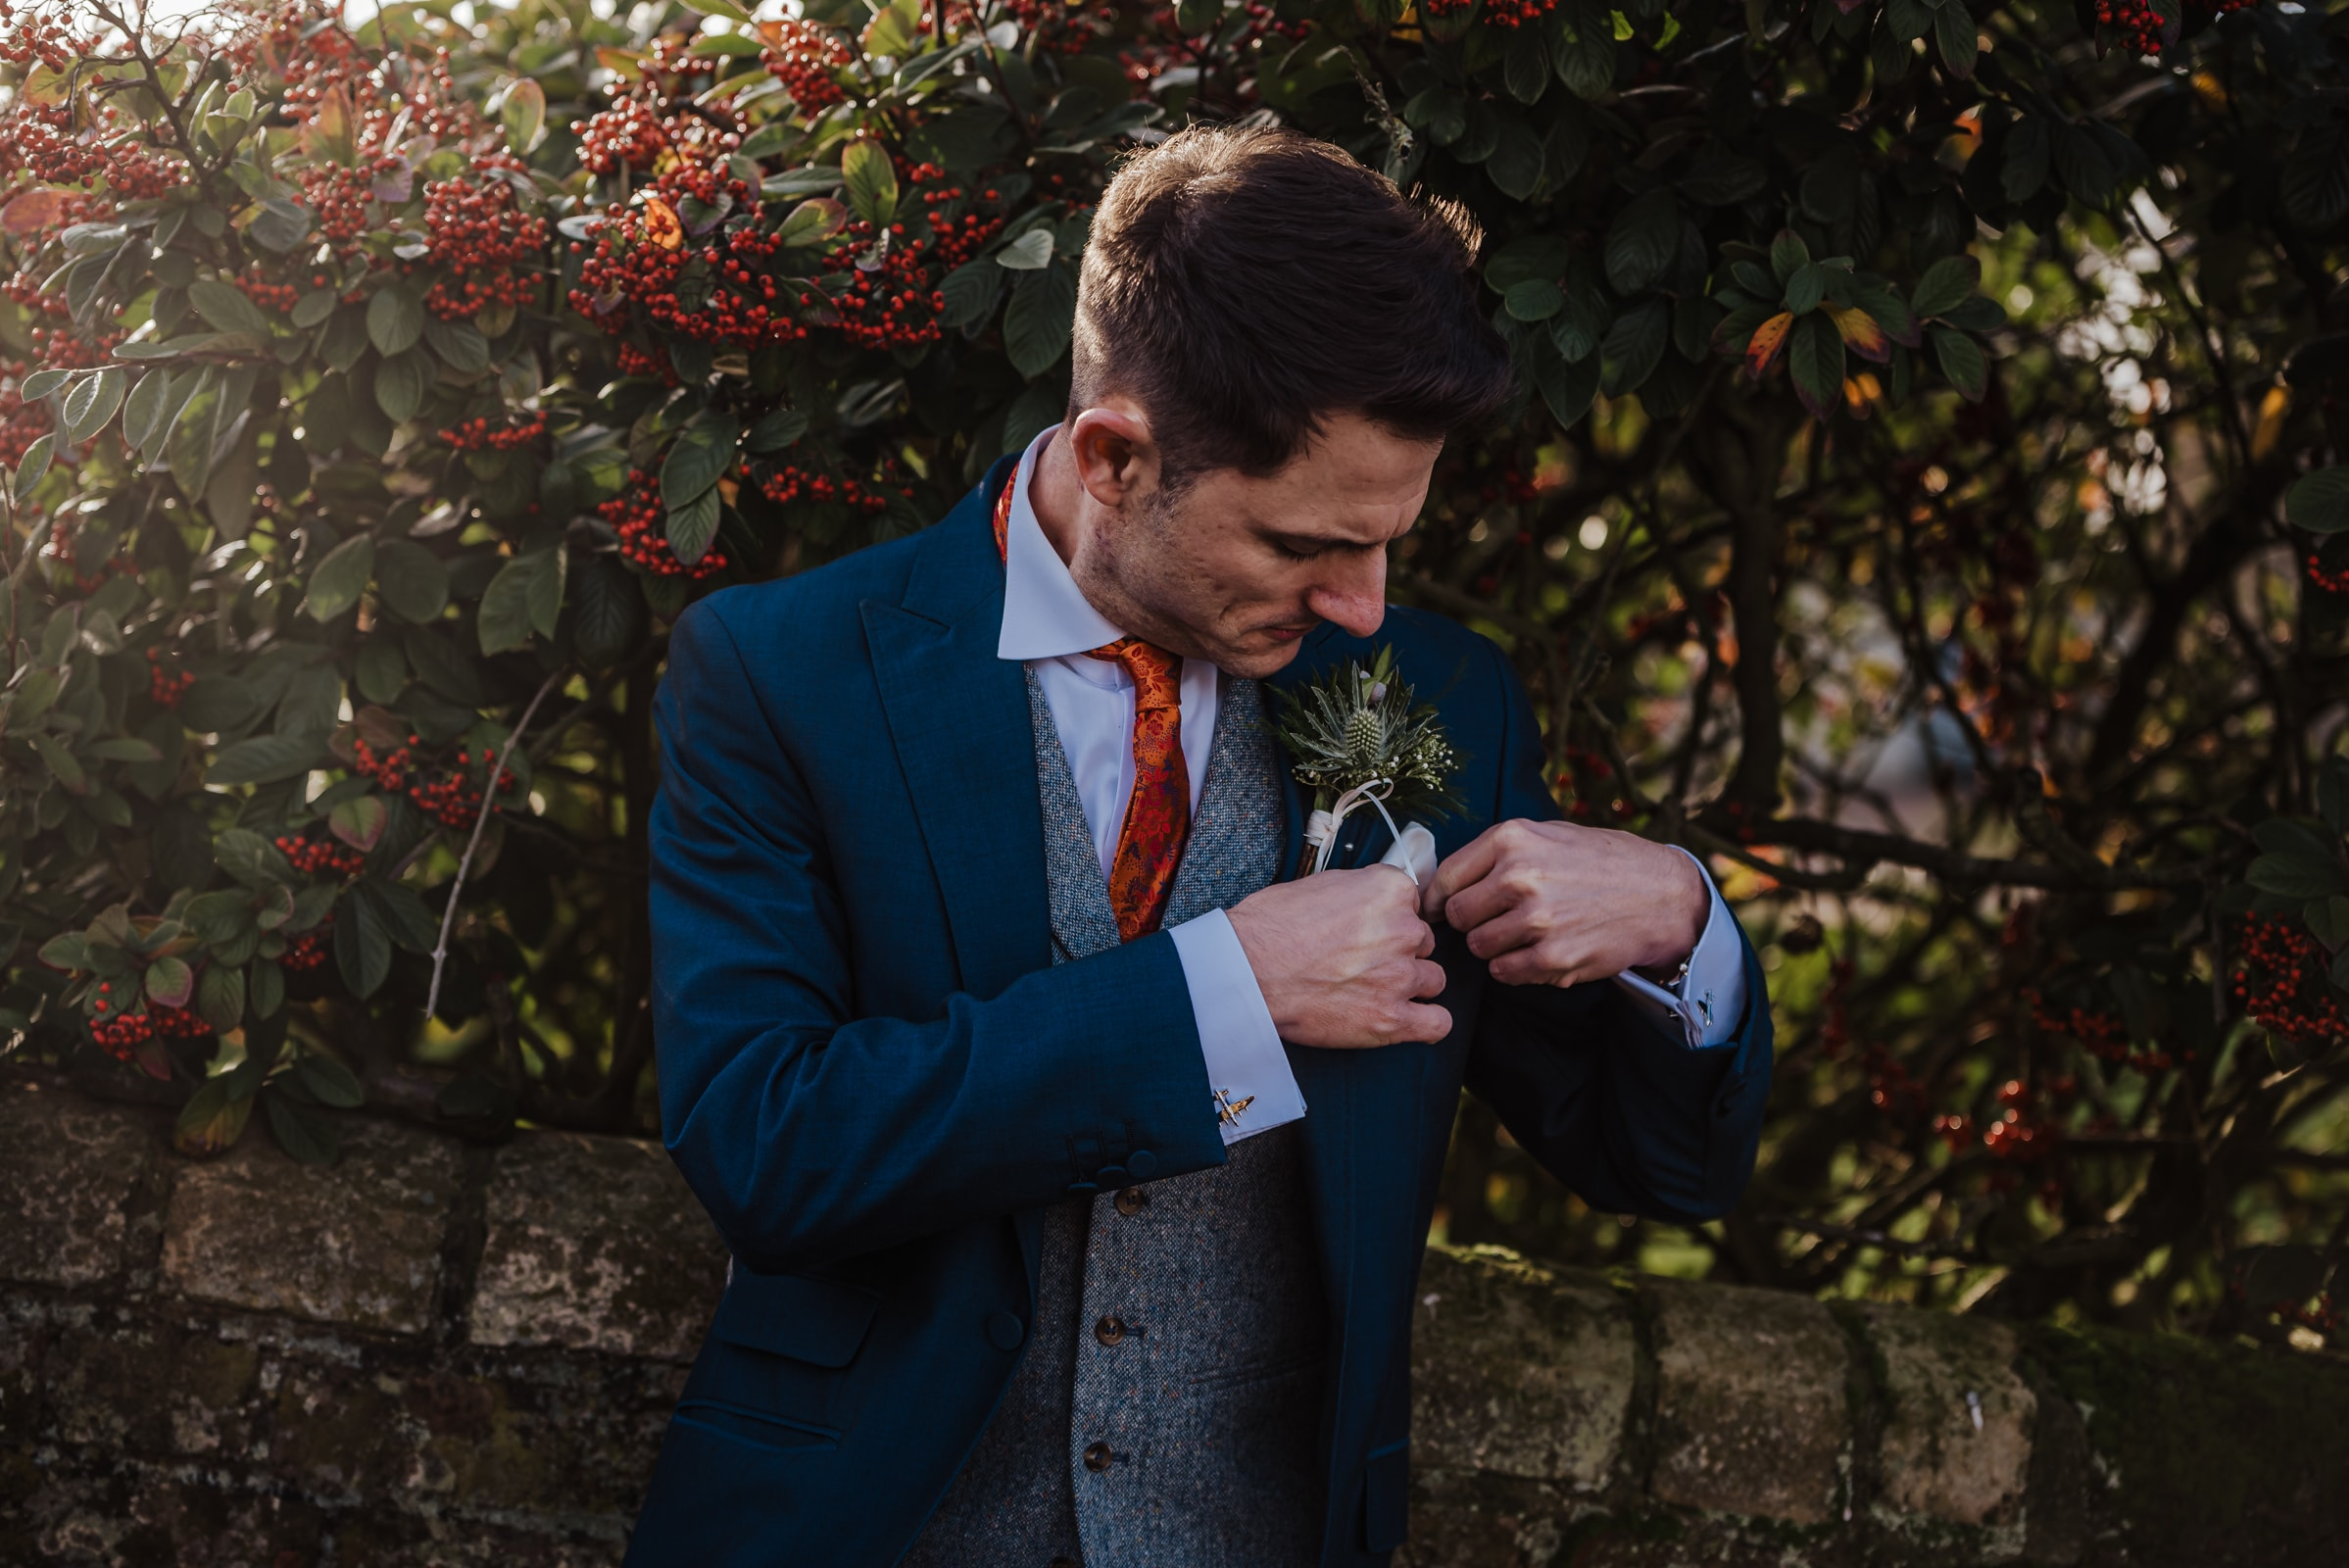 Groom in blue suits outside the barn before the wedding Roshni photography The Milling Barn, Bluntswood Hall, Throcking wedding photographer